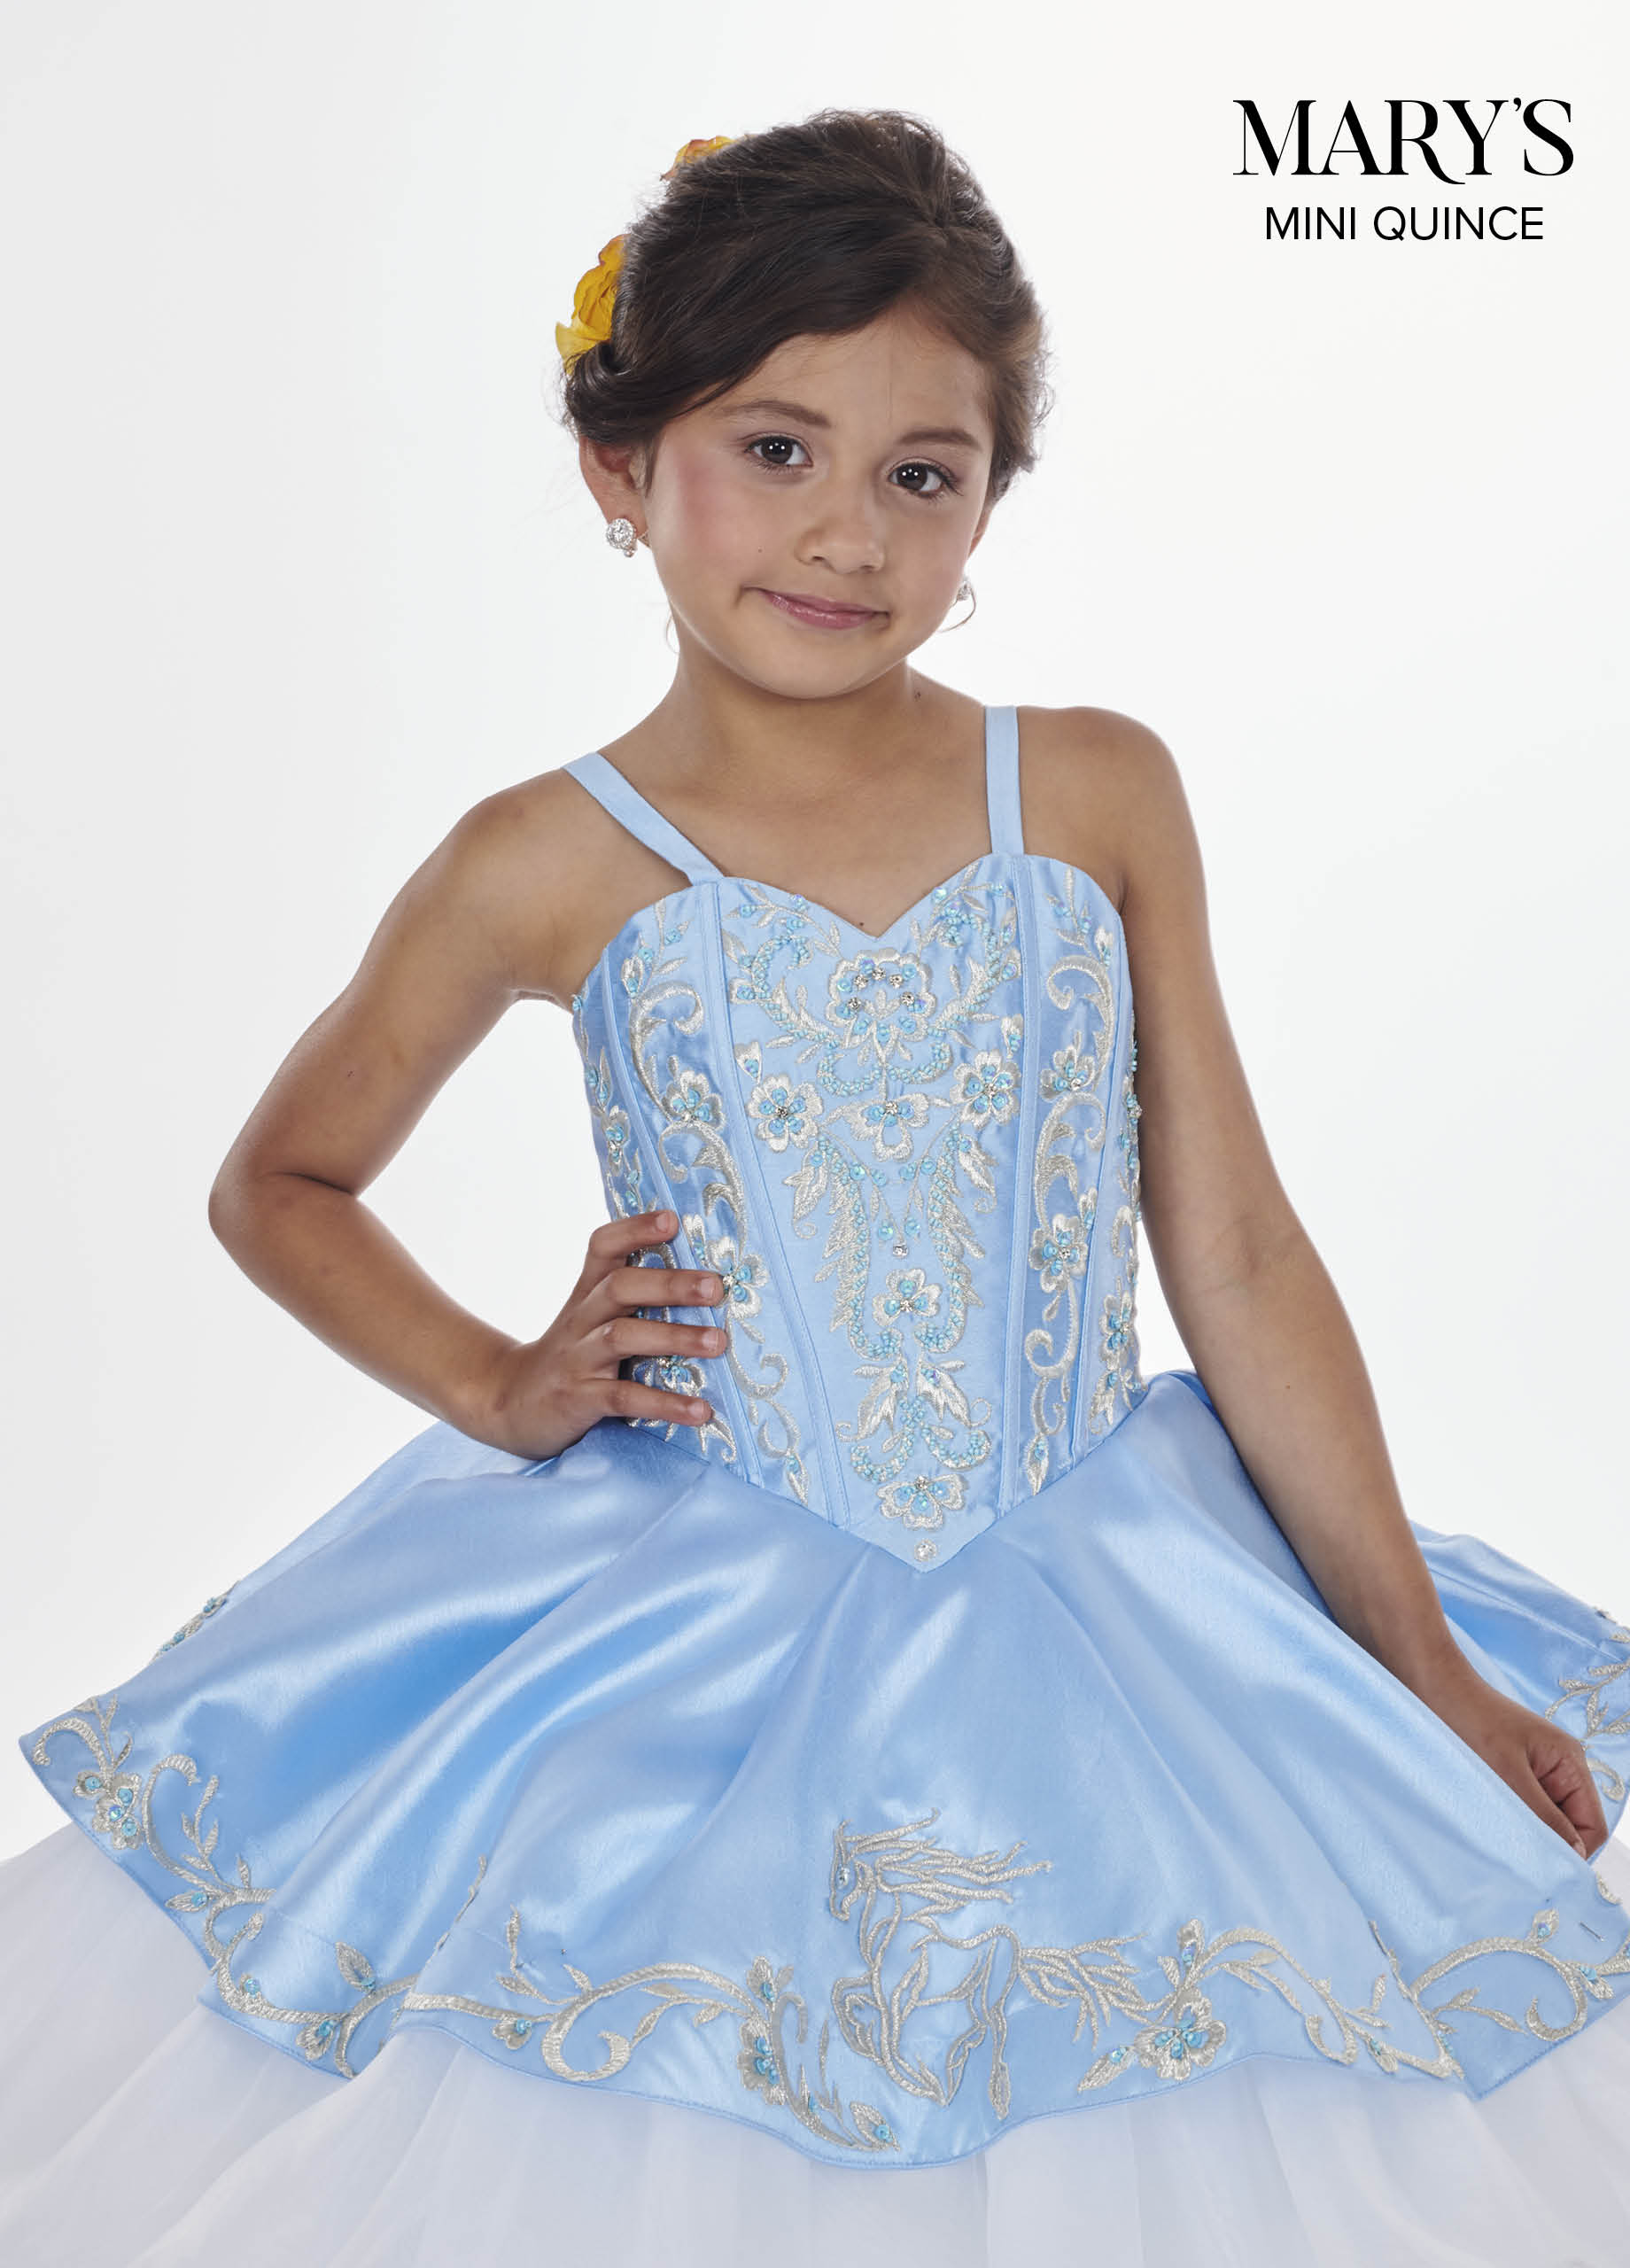 Little Quince Dresses | Mini Quince | Style - MQ4010